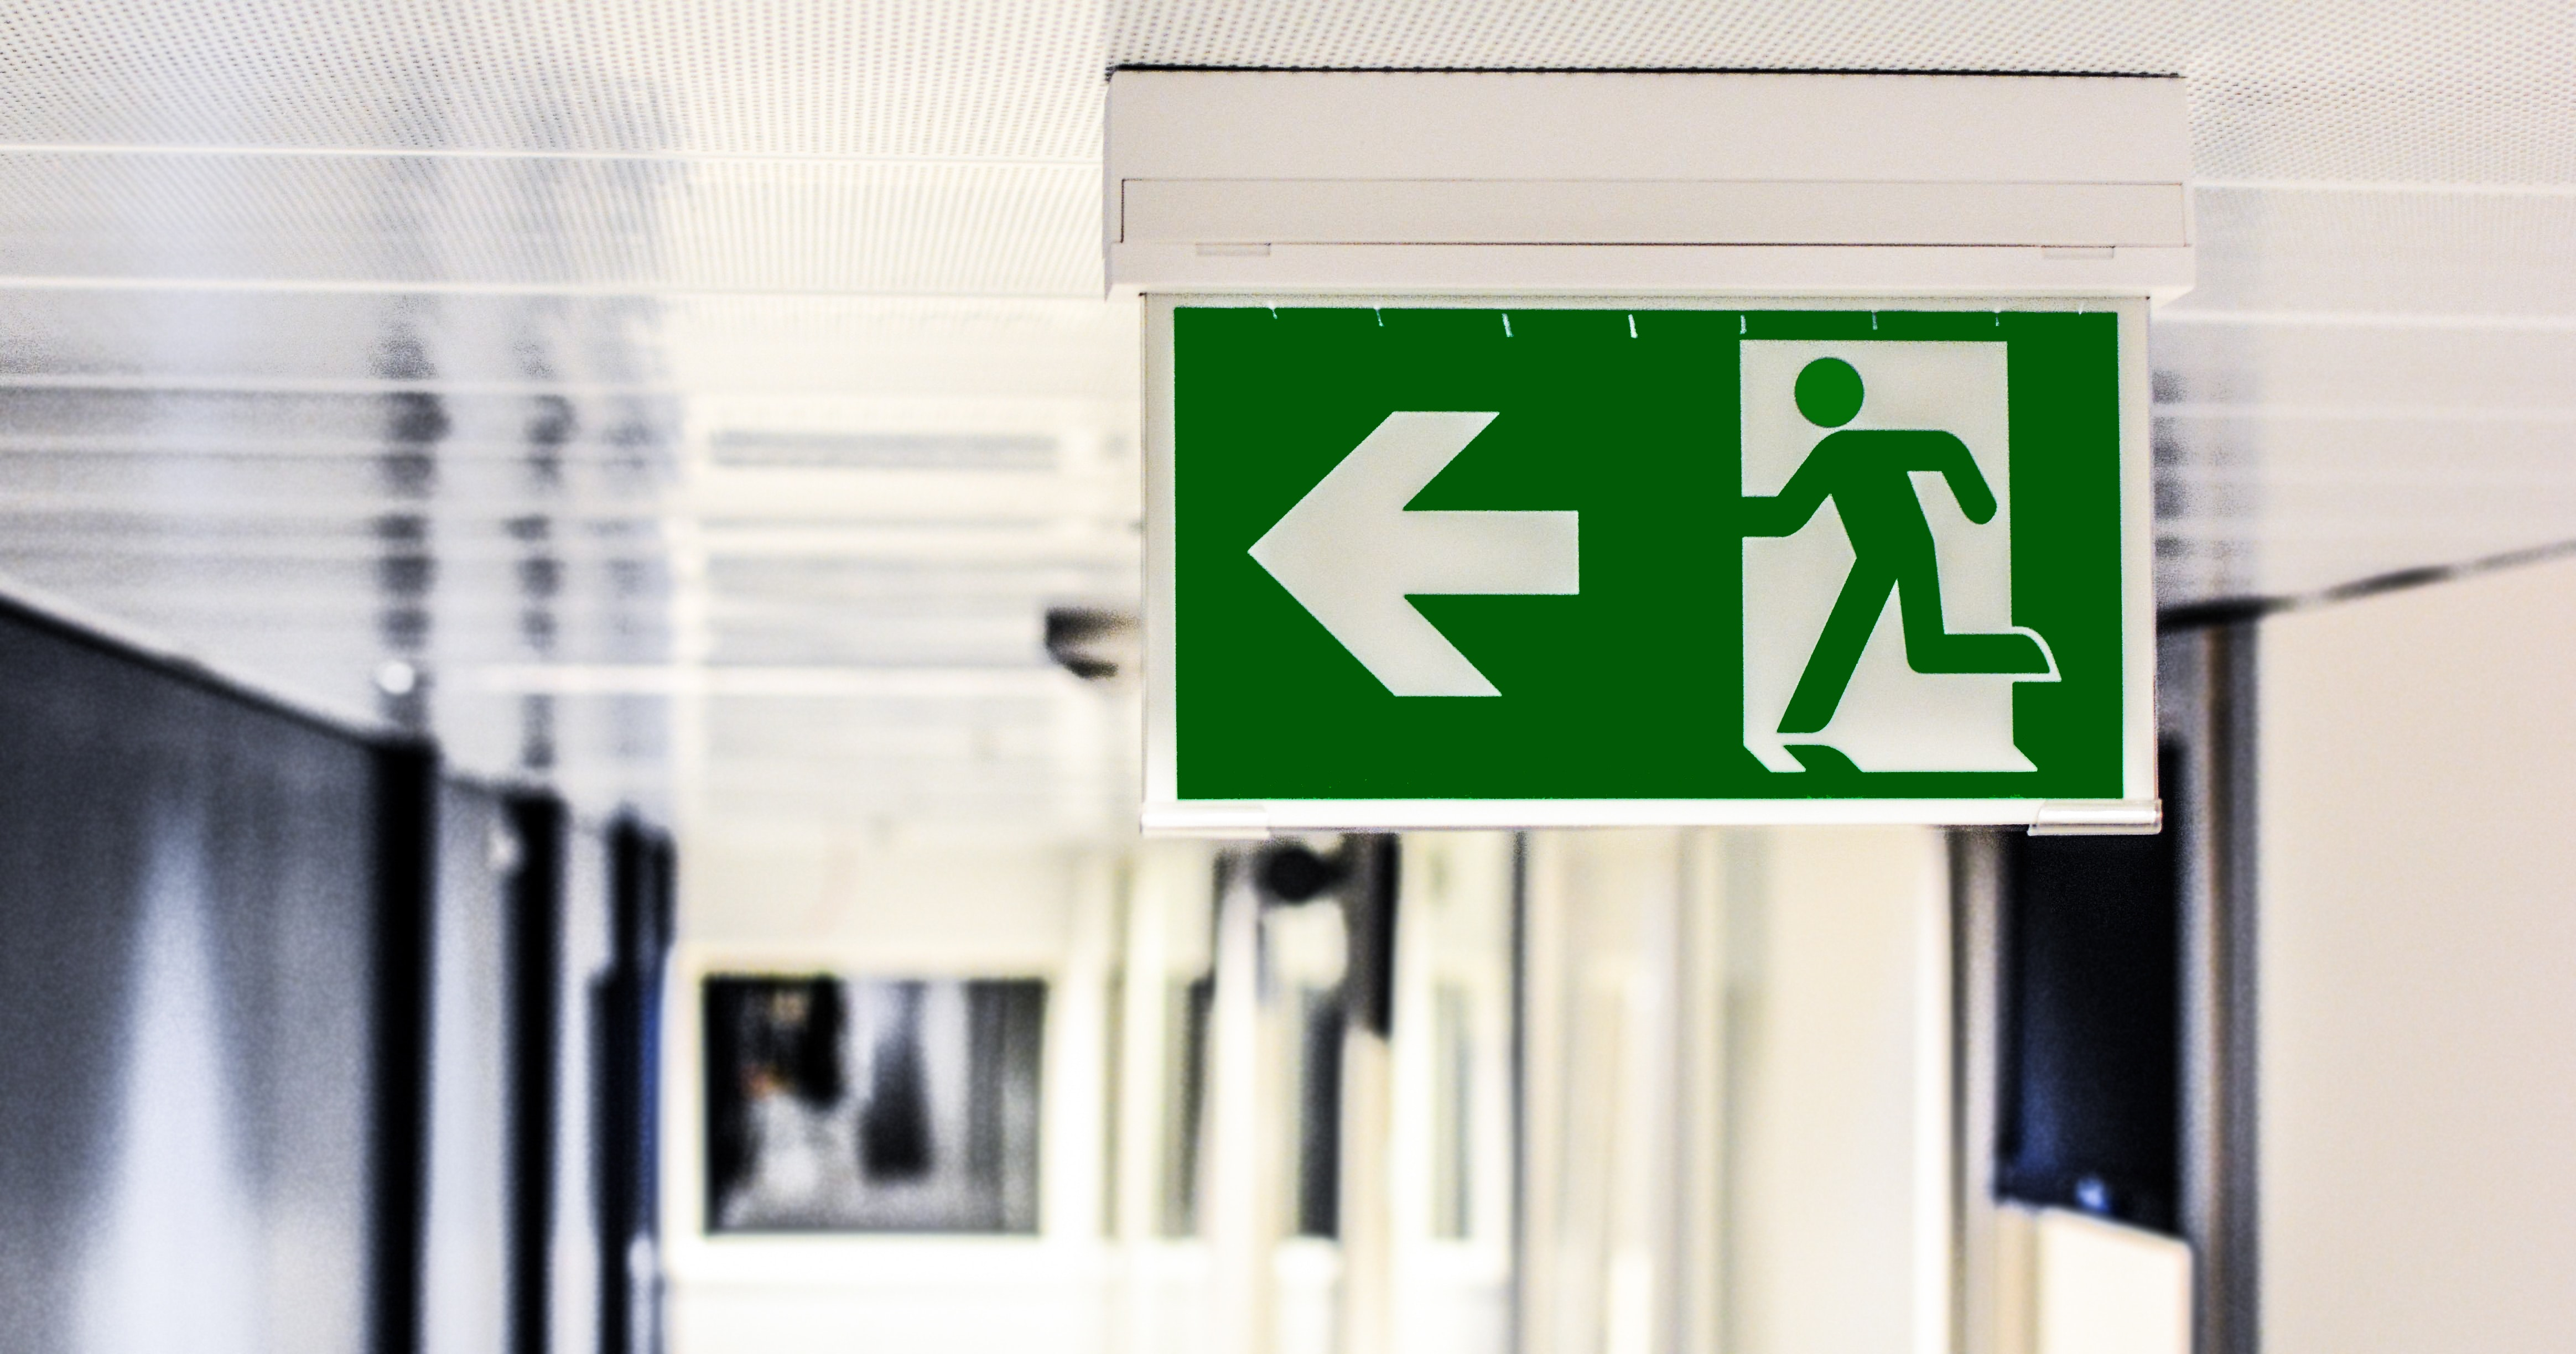 Green and White Male Gender Rest Room Signage, Arrow, Blur, Depth of field, Directional sign, HQ Photo